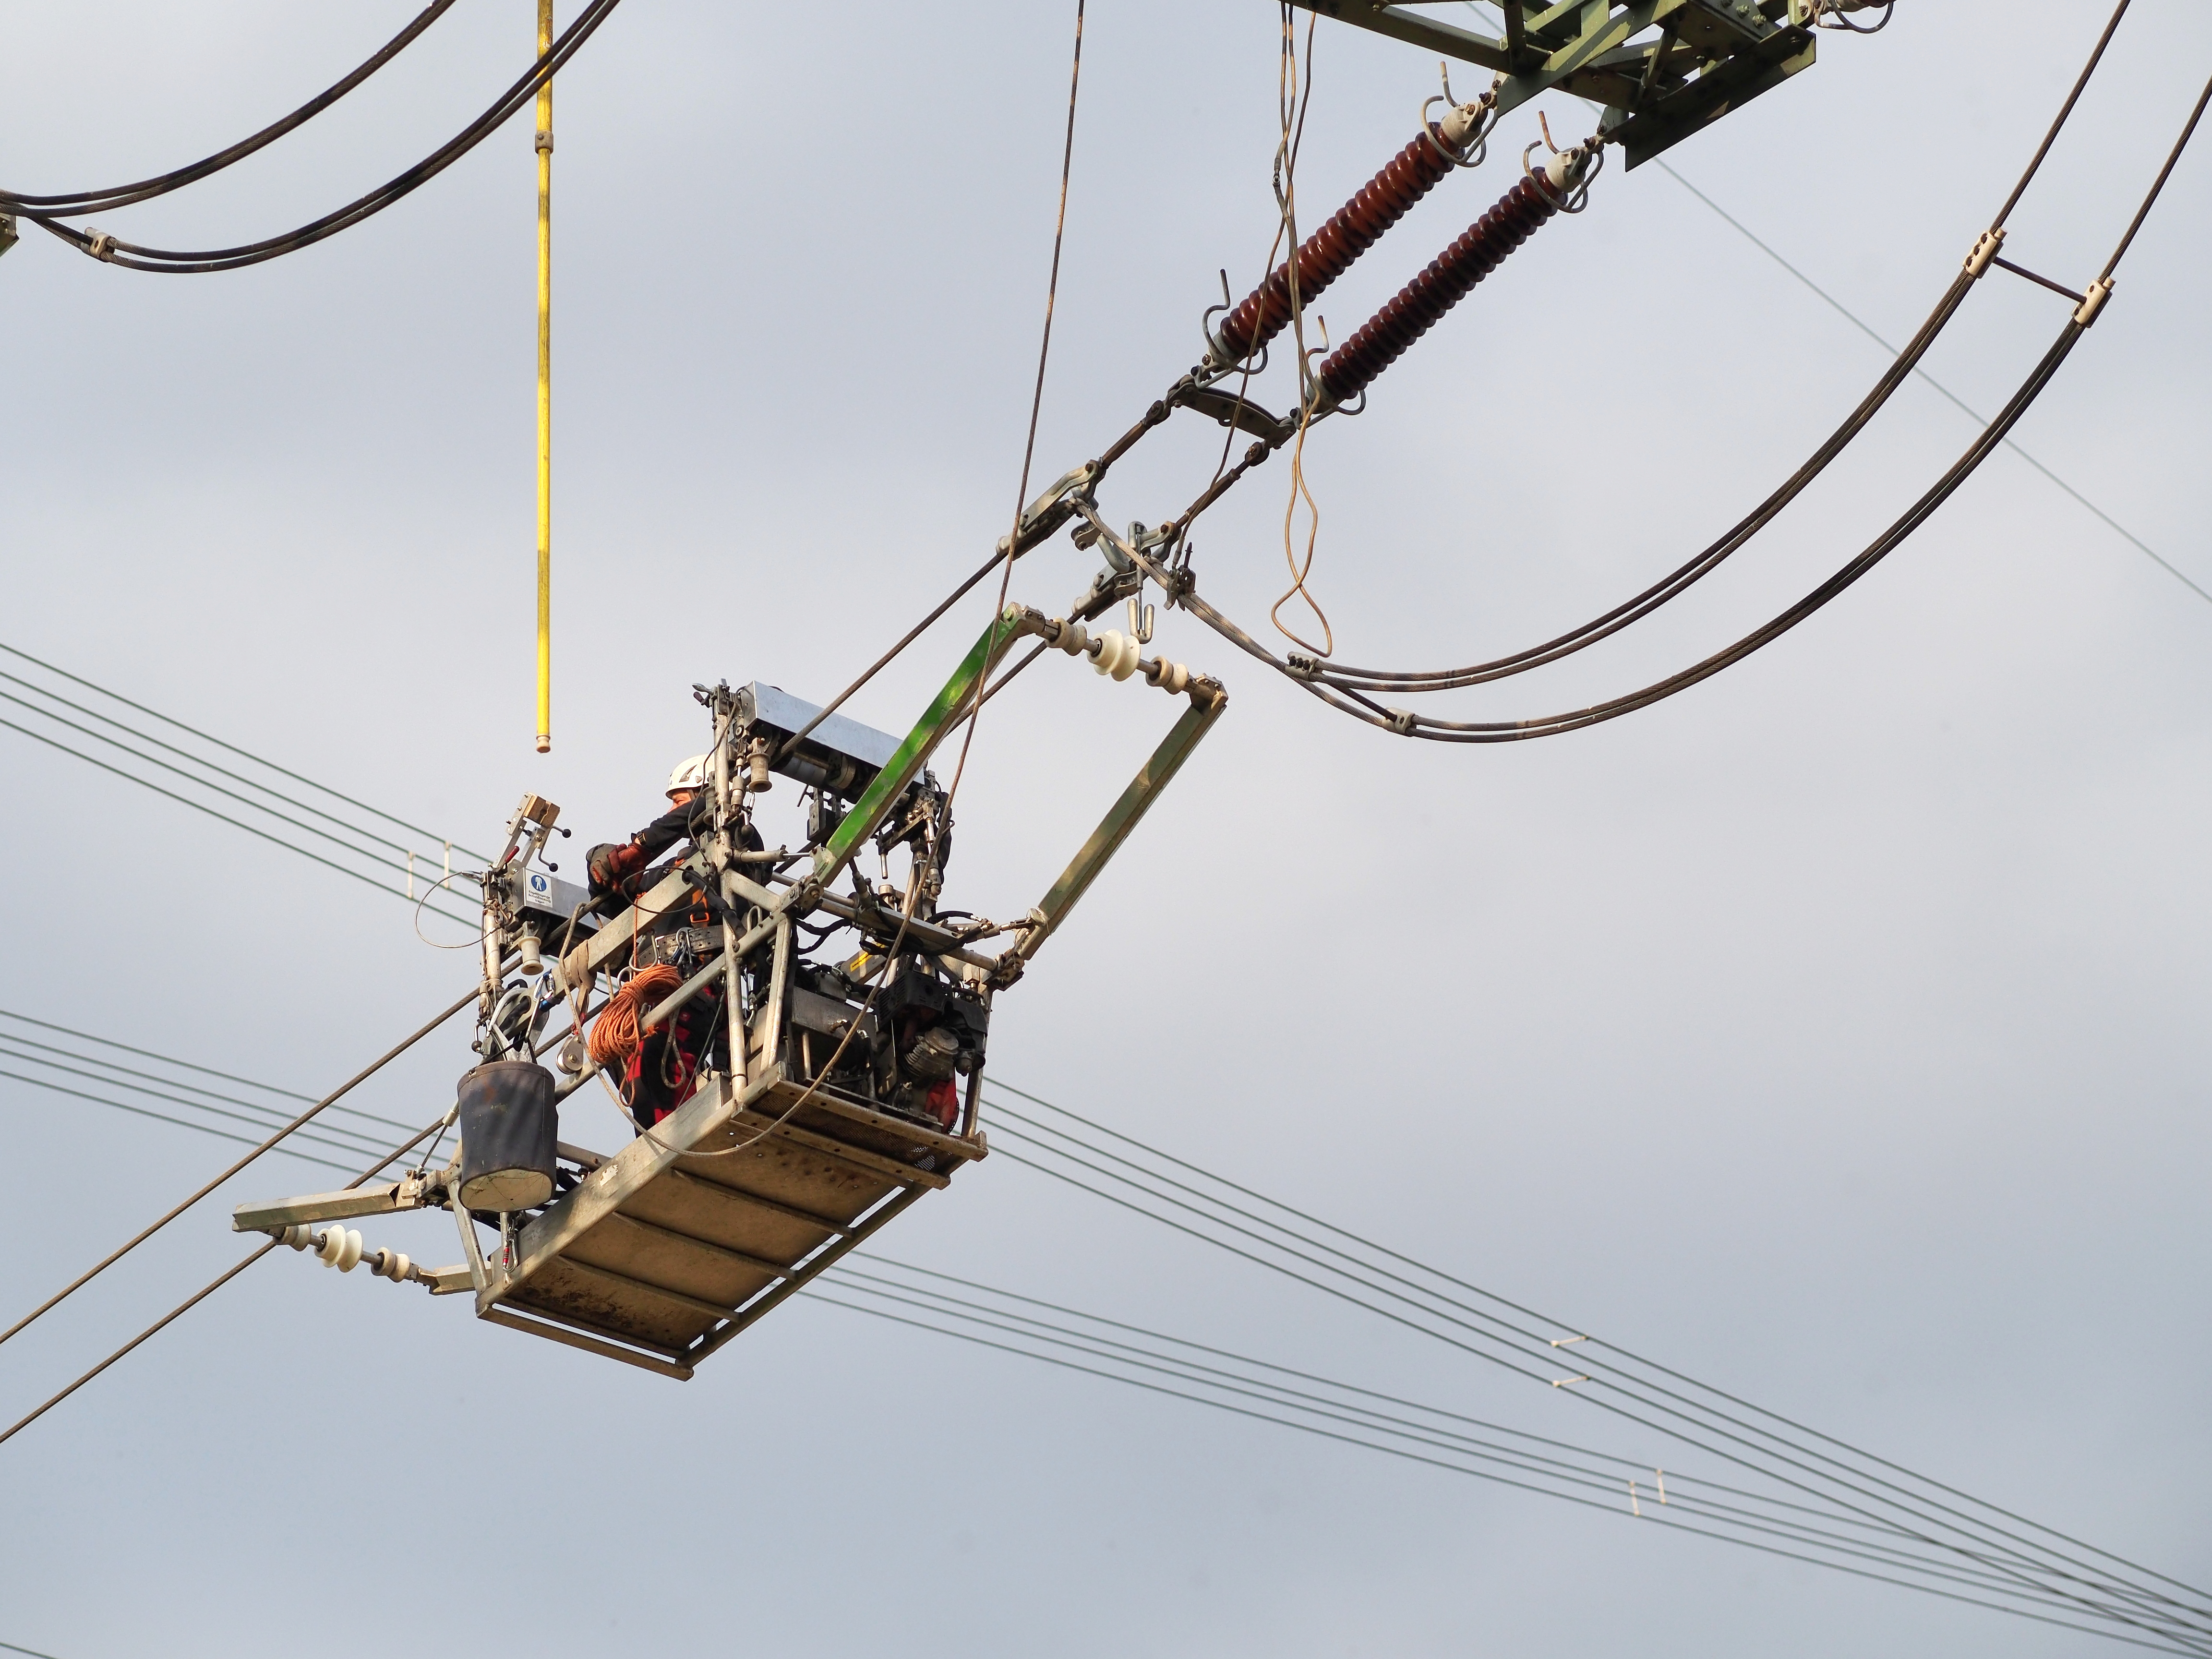 2013-cable-trolley-power-line-maintenance-1